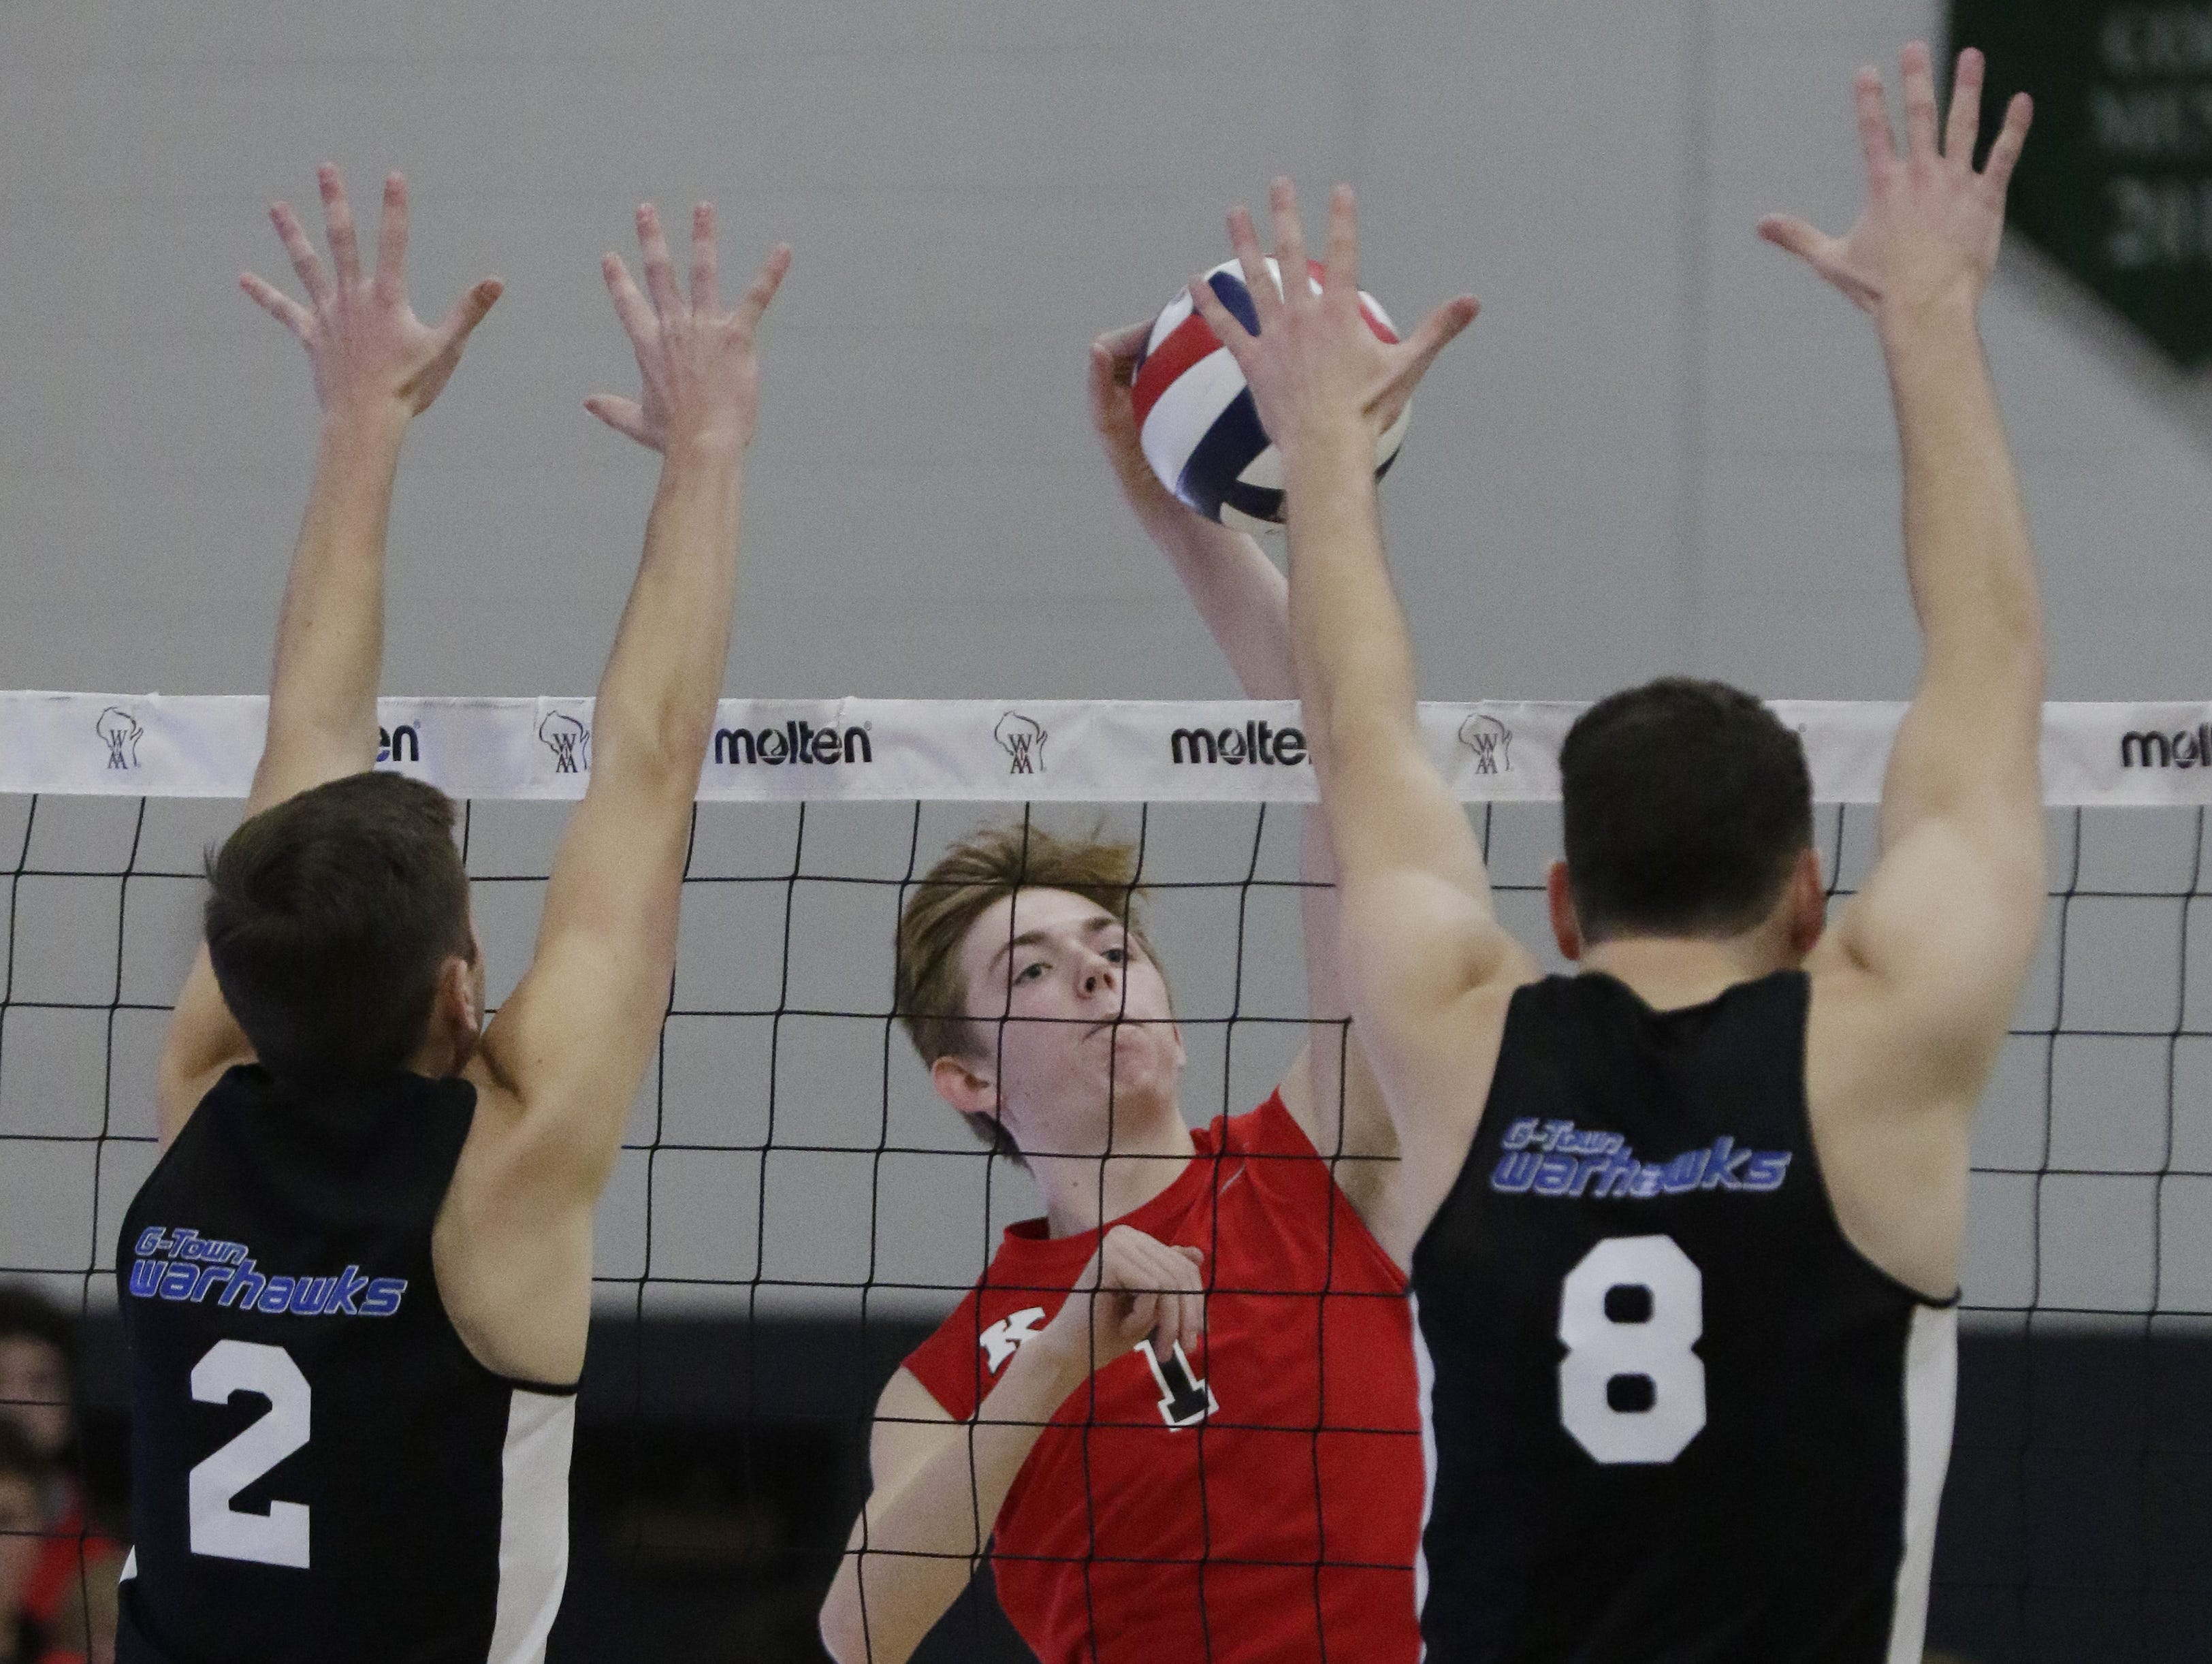 KimberlyÕs Spencer Herman spikes the ball against GermantownÕs Luke Taylor and Ben Schultz.  Kimberly Papermakers played Germantown Warhawks in Division 1 WIAA State Boys Volleyball Championship, Saturday, November 10, 2018 at Wisconsin Lutheran College in Milwaukee, Wis.  Kimberly took second place in the tournament.   Joe Sienkiewicz/USA Today NETWORK-Wisconsin